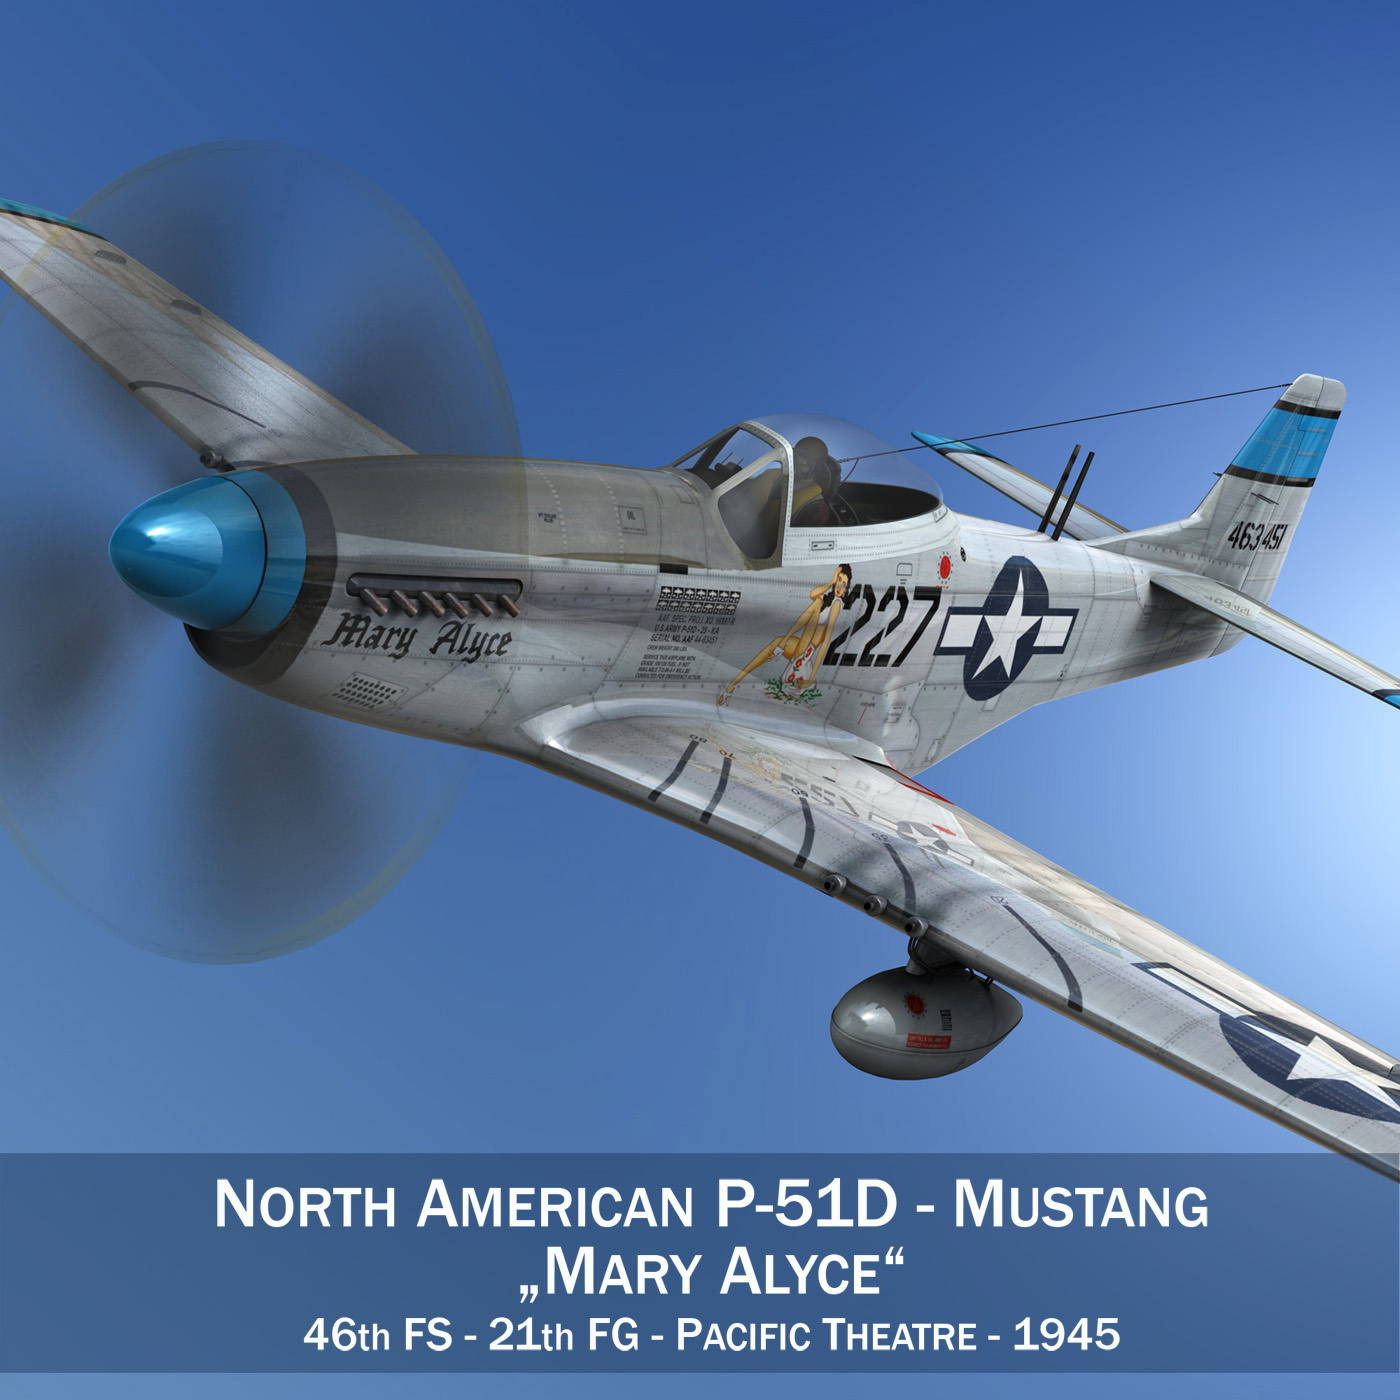 north american p-51d – mustang – mary alyce 3d model 3ds fbx c4d lwo obj 267566